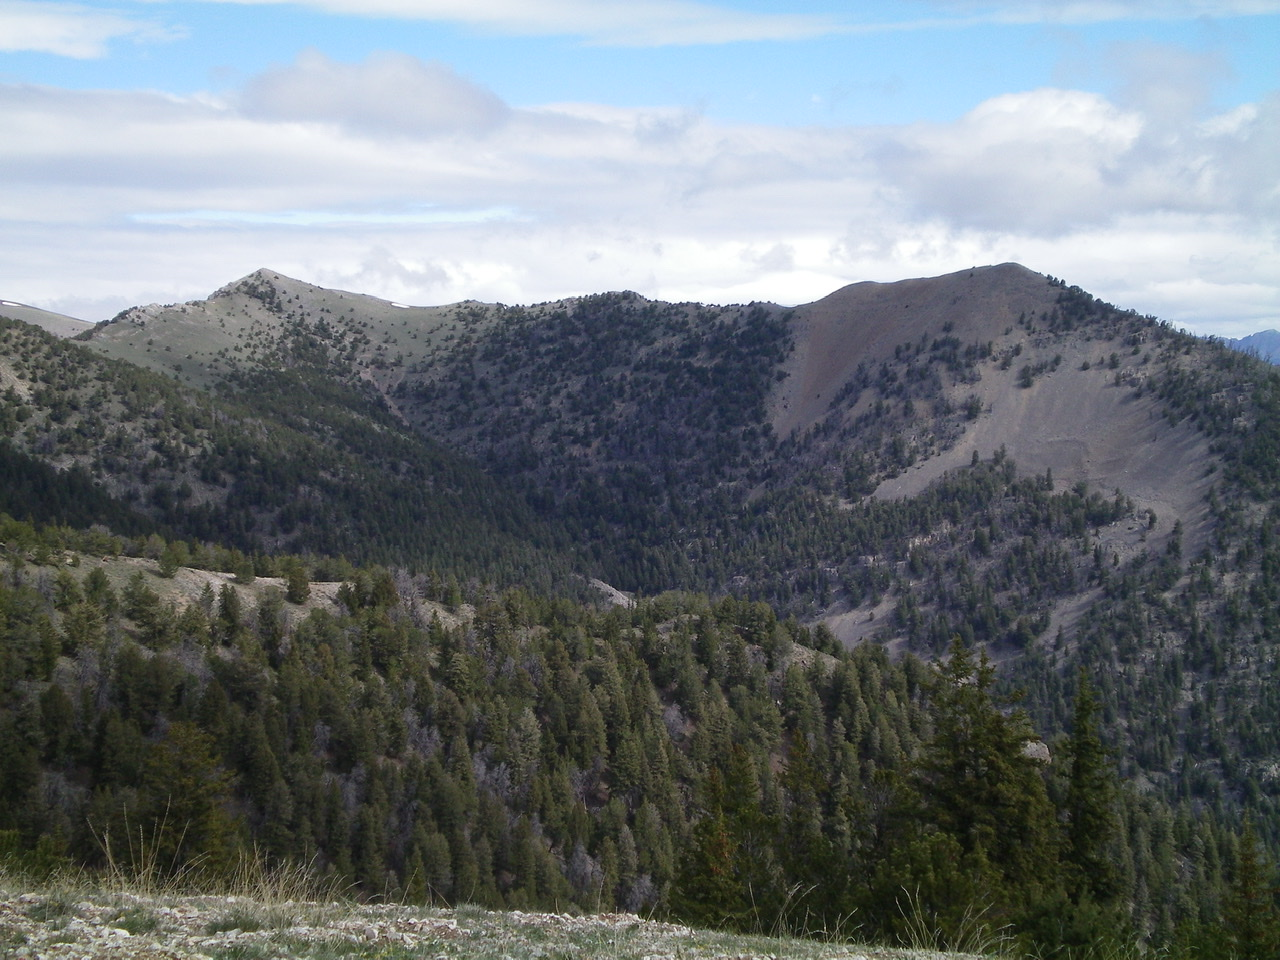 Peak 9877 (left) and Gallagher Peak (right) and the tedious connecting ridge between them. Livingston Douglas Photo